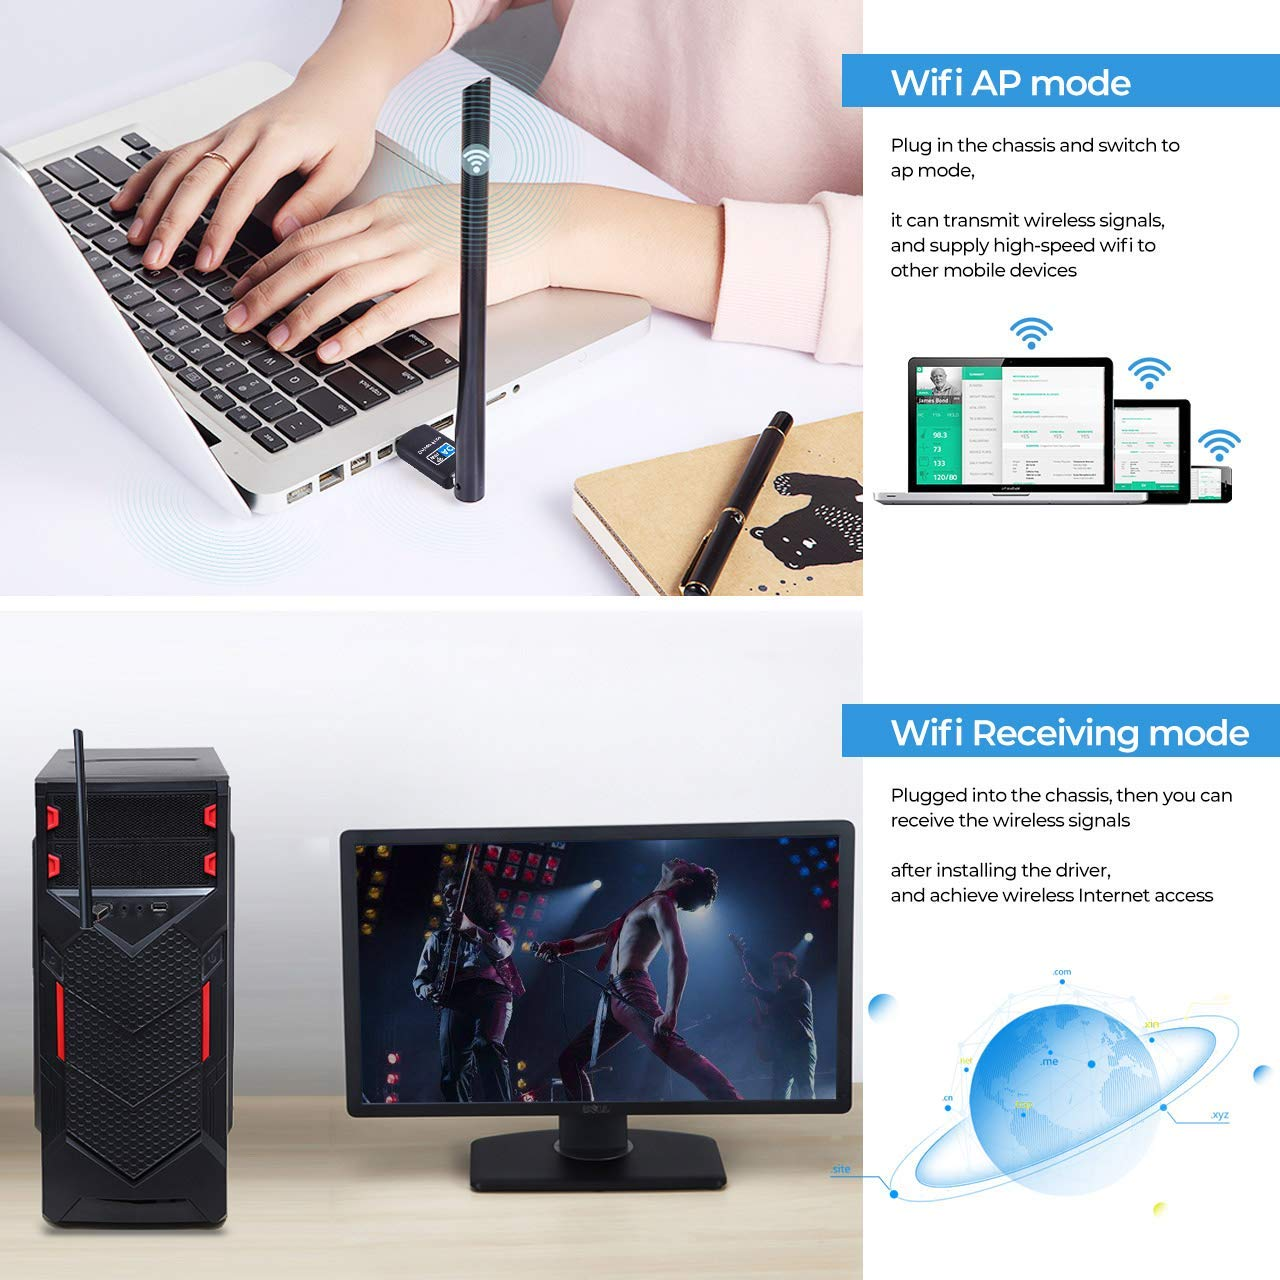 No CD Network Card Wireless Network WiFi Dongle with 5dBi Antenna Wireless Network Adapter 802.11ac USB WiFi Adapter 600Mbps Dual Band 2.4GHz and 5.8GHz Compatible with Windows 10//8//7//Vista//XP Mac OS